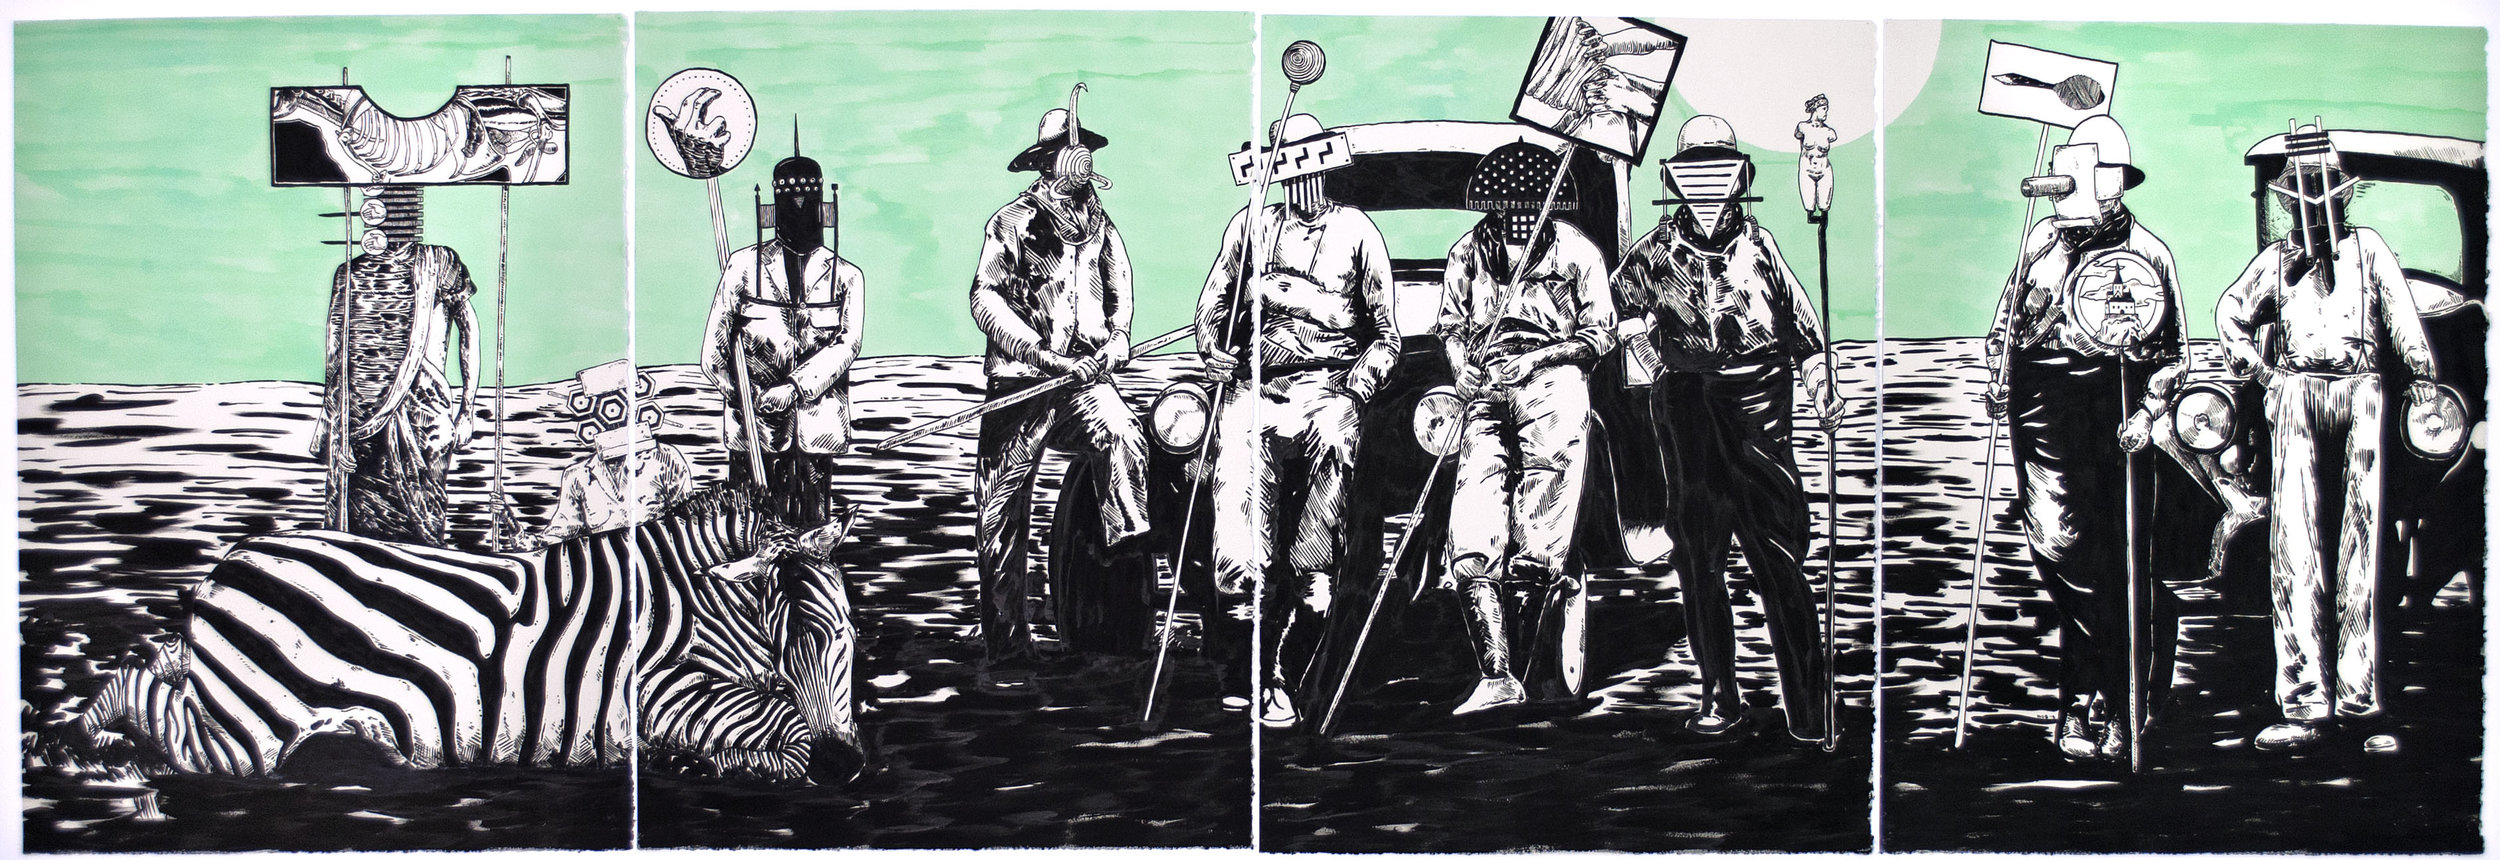 The Tide Has Turned #4 , 2013 India ink on paper 30 x 88 inches (quadriptych)